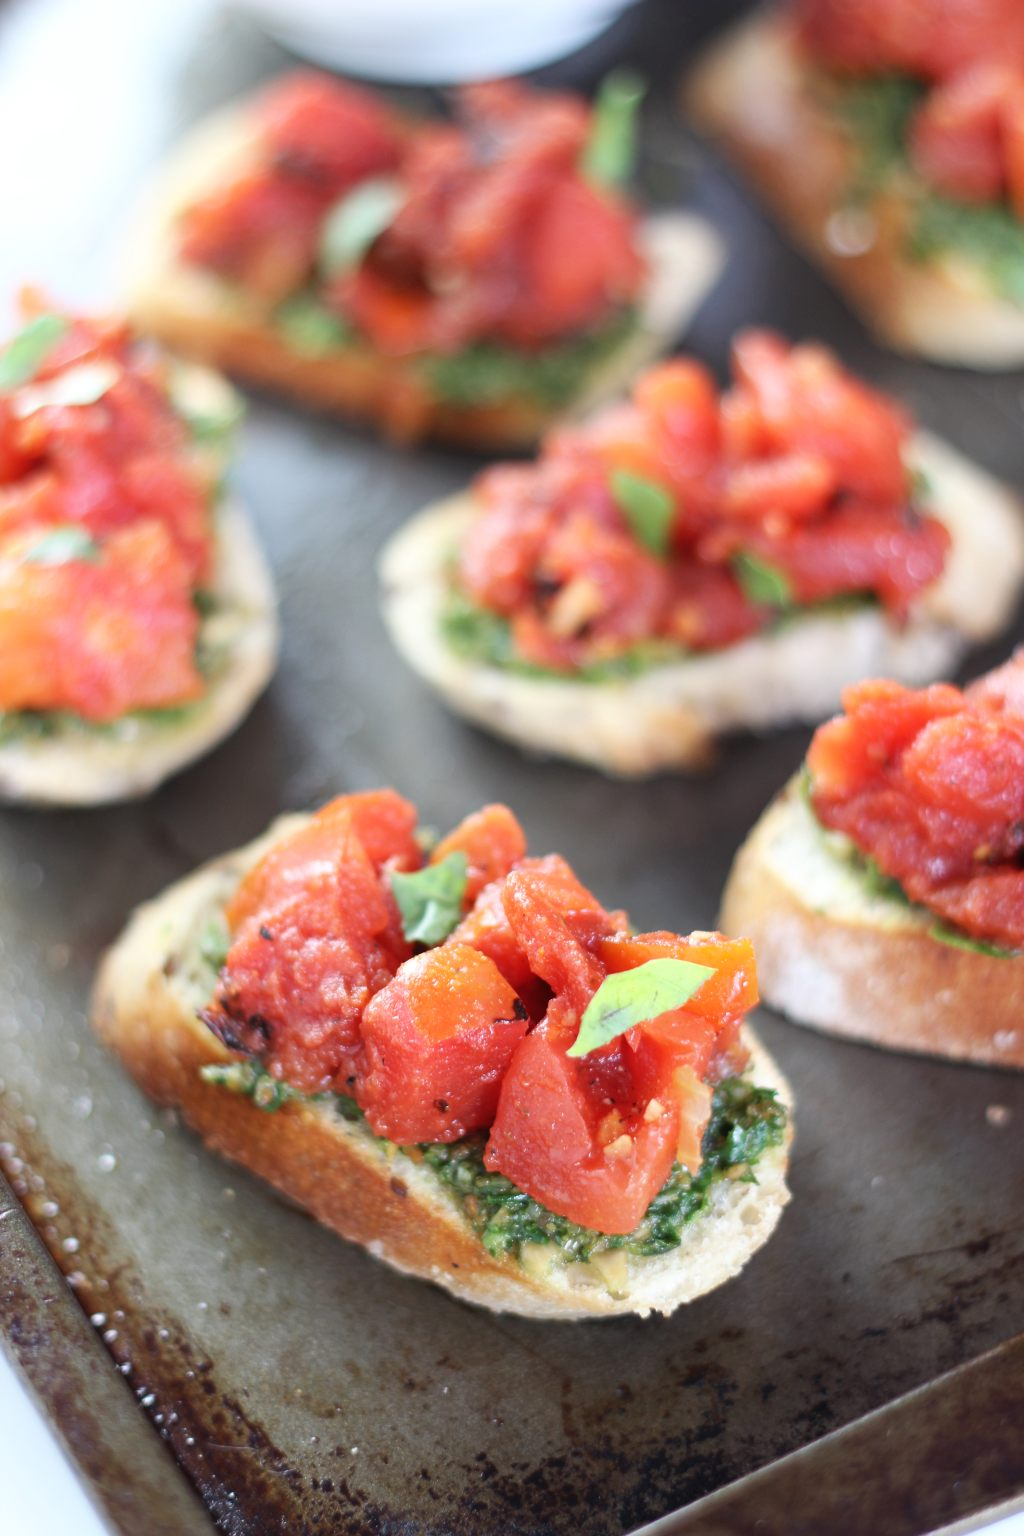 ... baguettes, which are topped with roasted garlic tomato Bruschetta